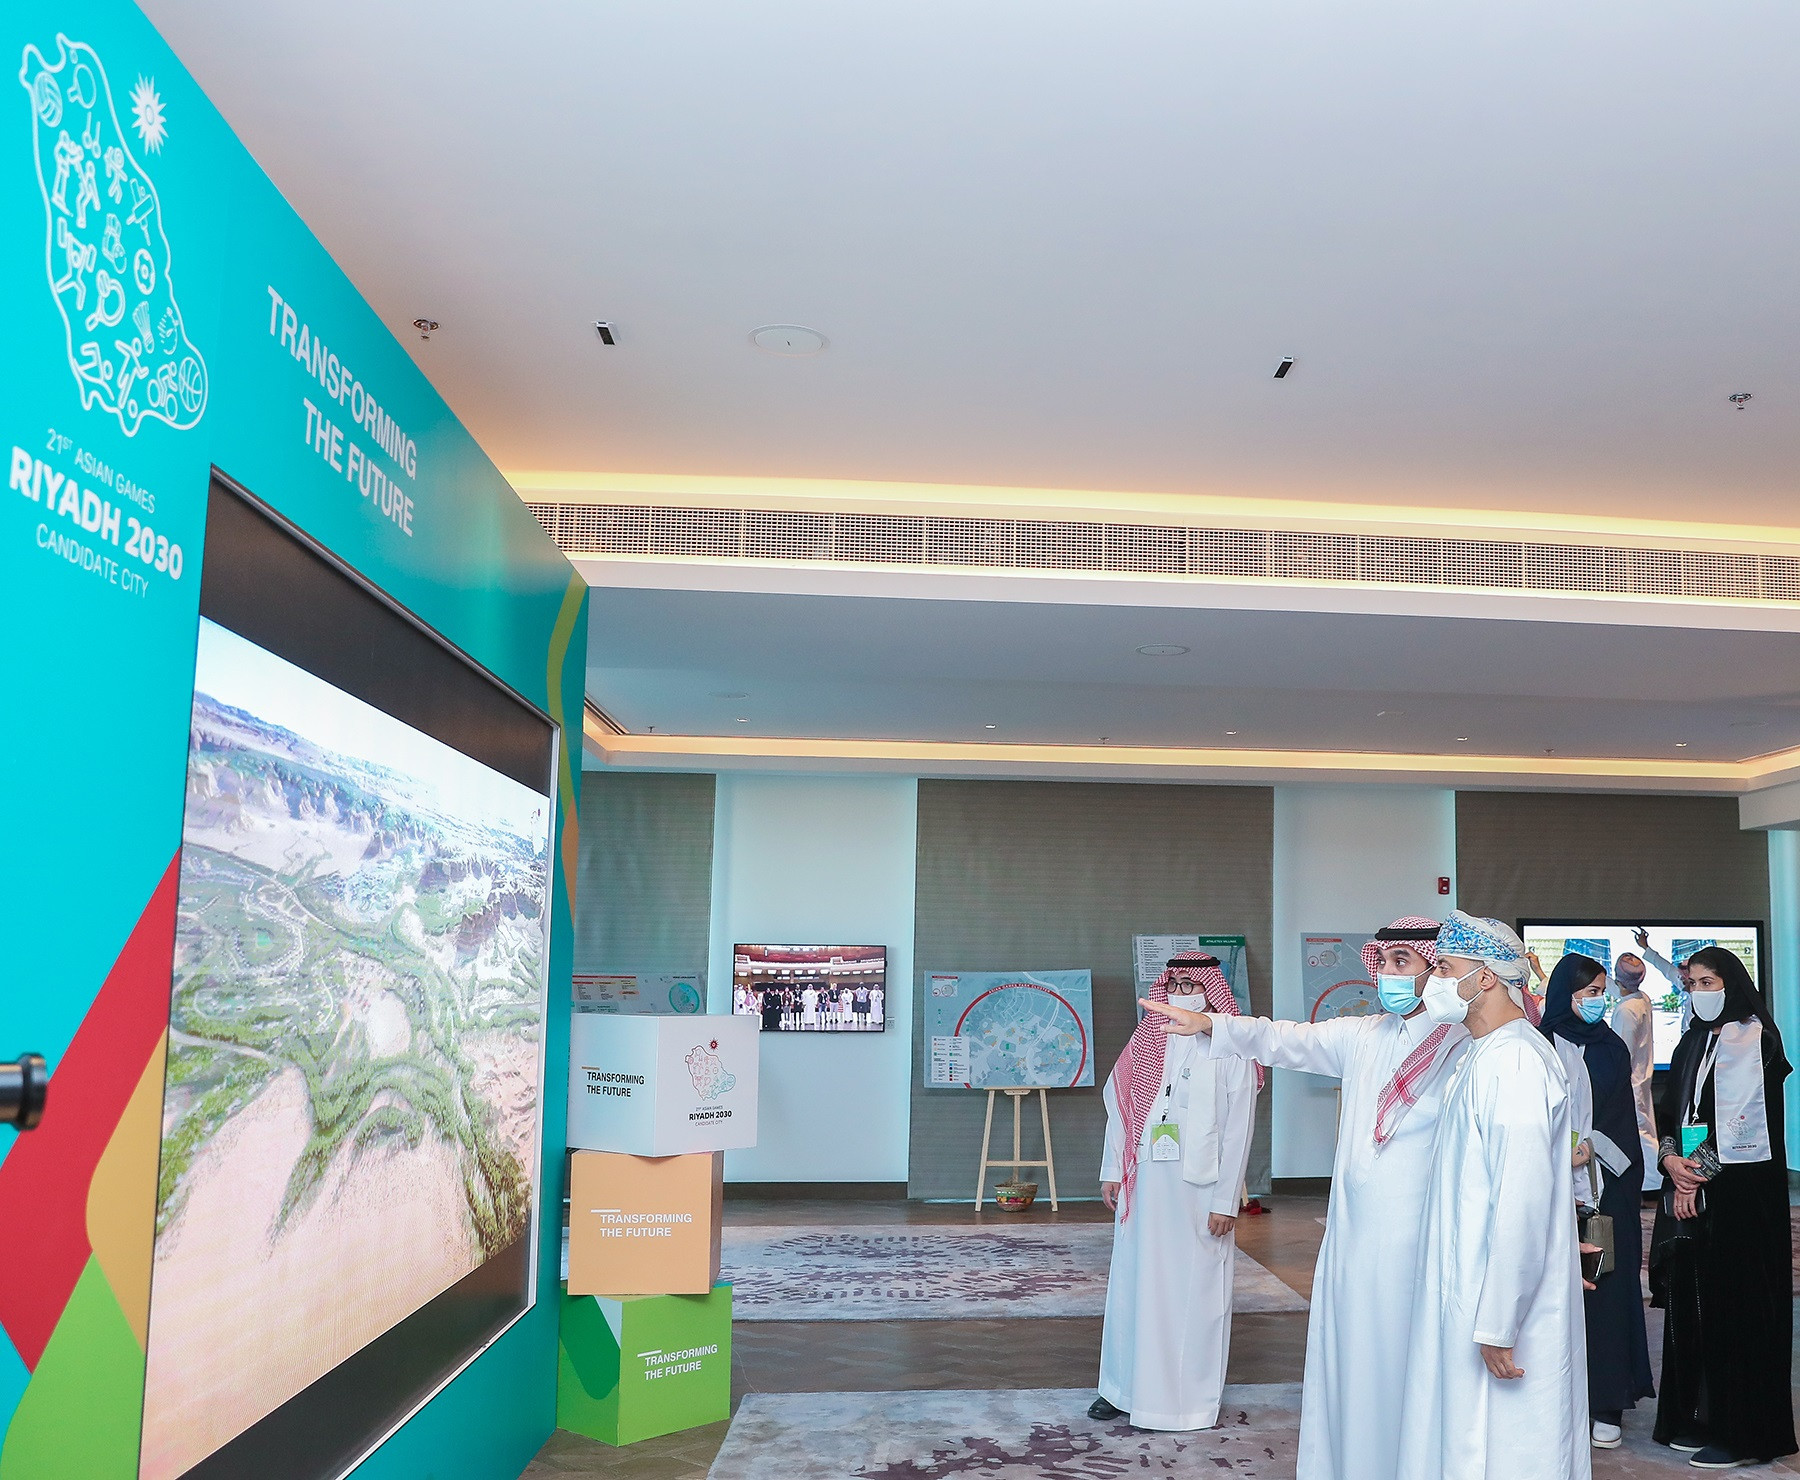 Riyadh's bid to stage 2030 Asian Games supported by 91 per cent of Saudi population